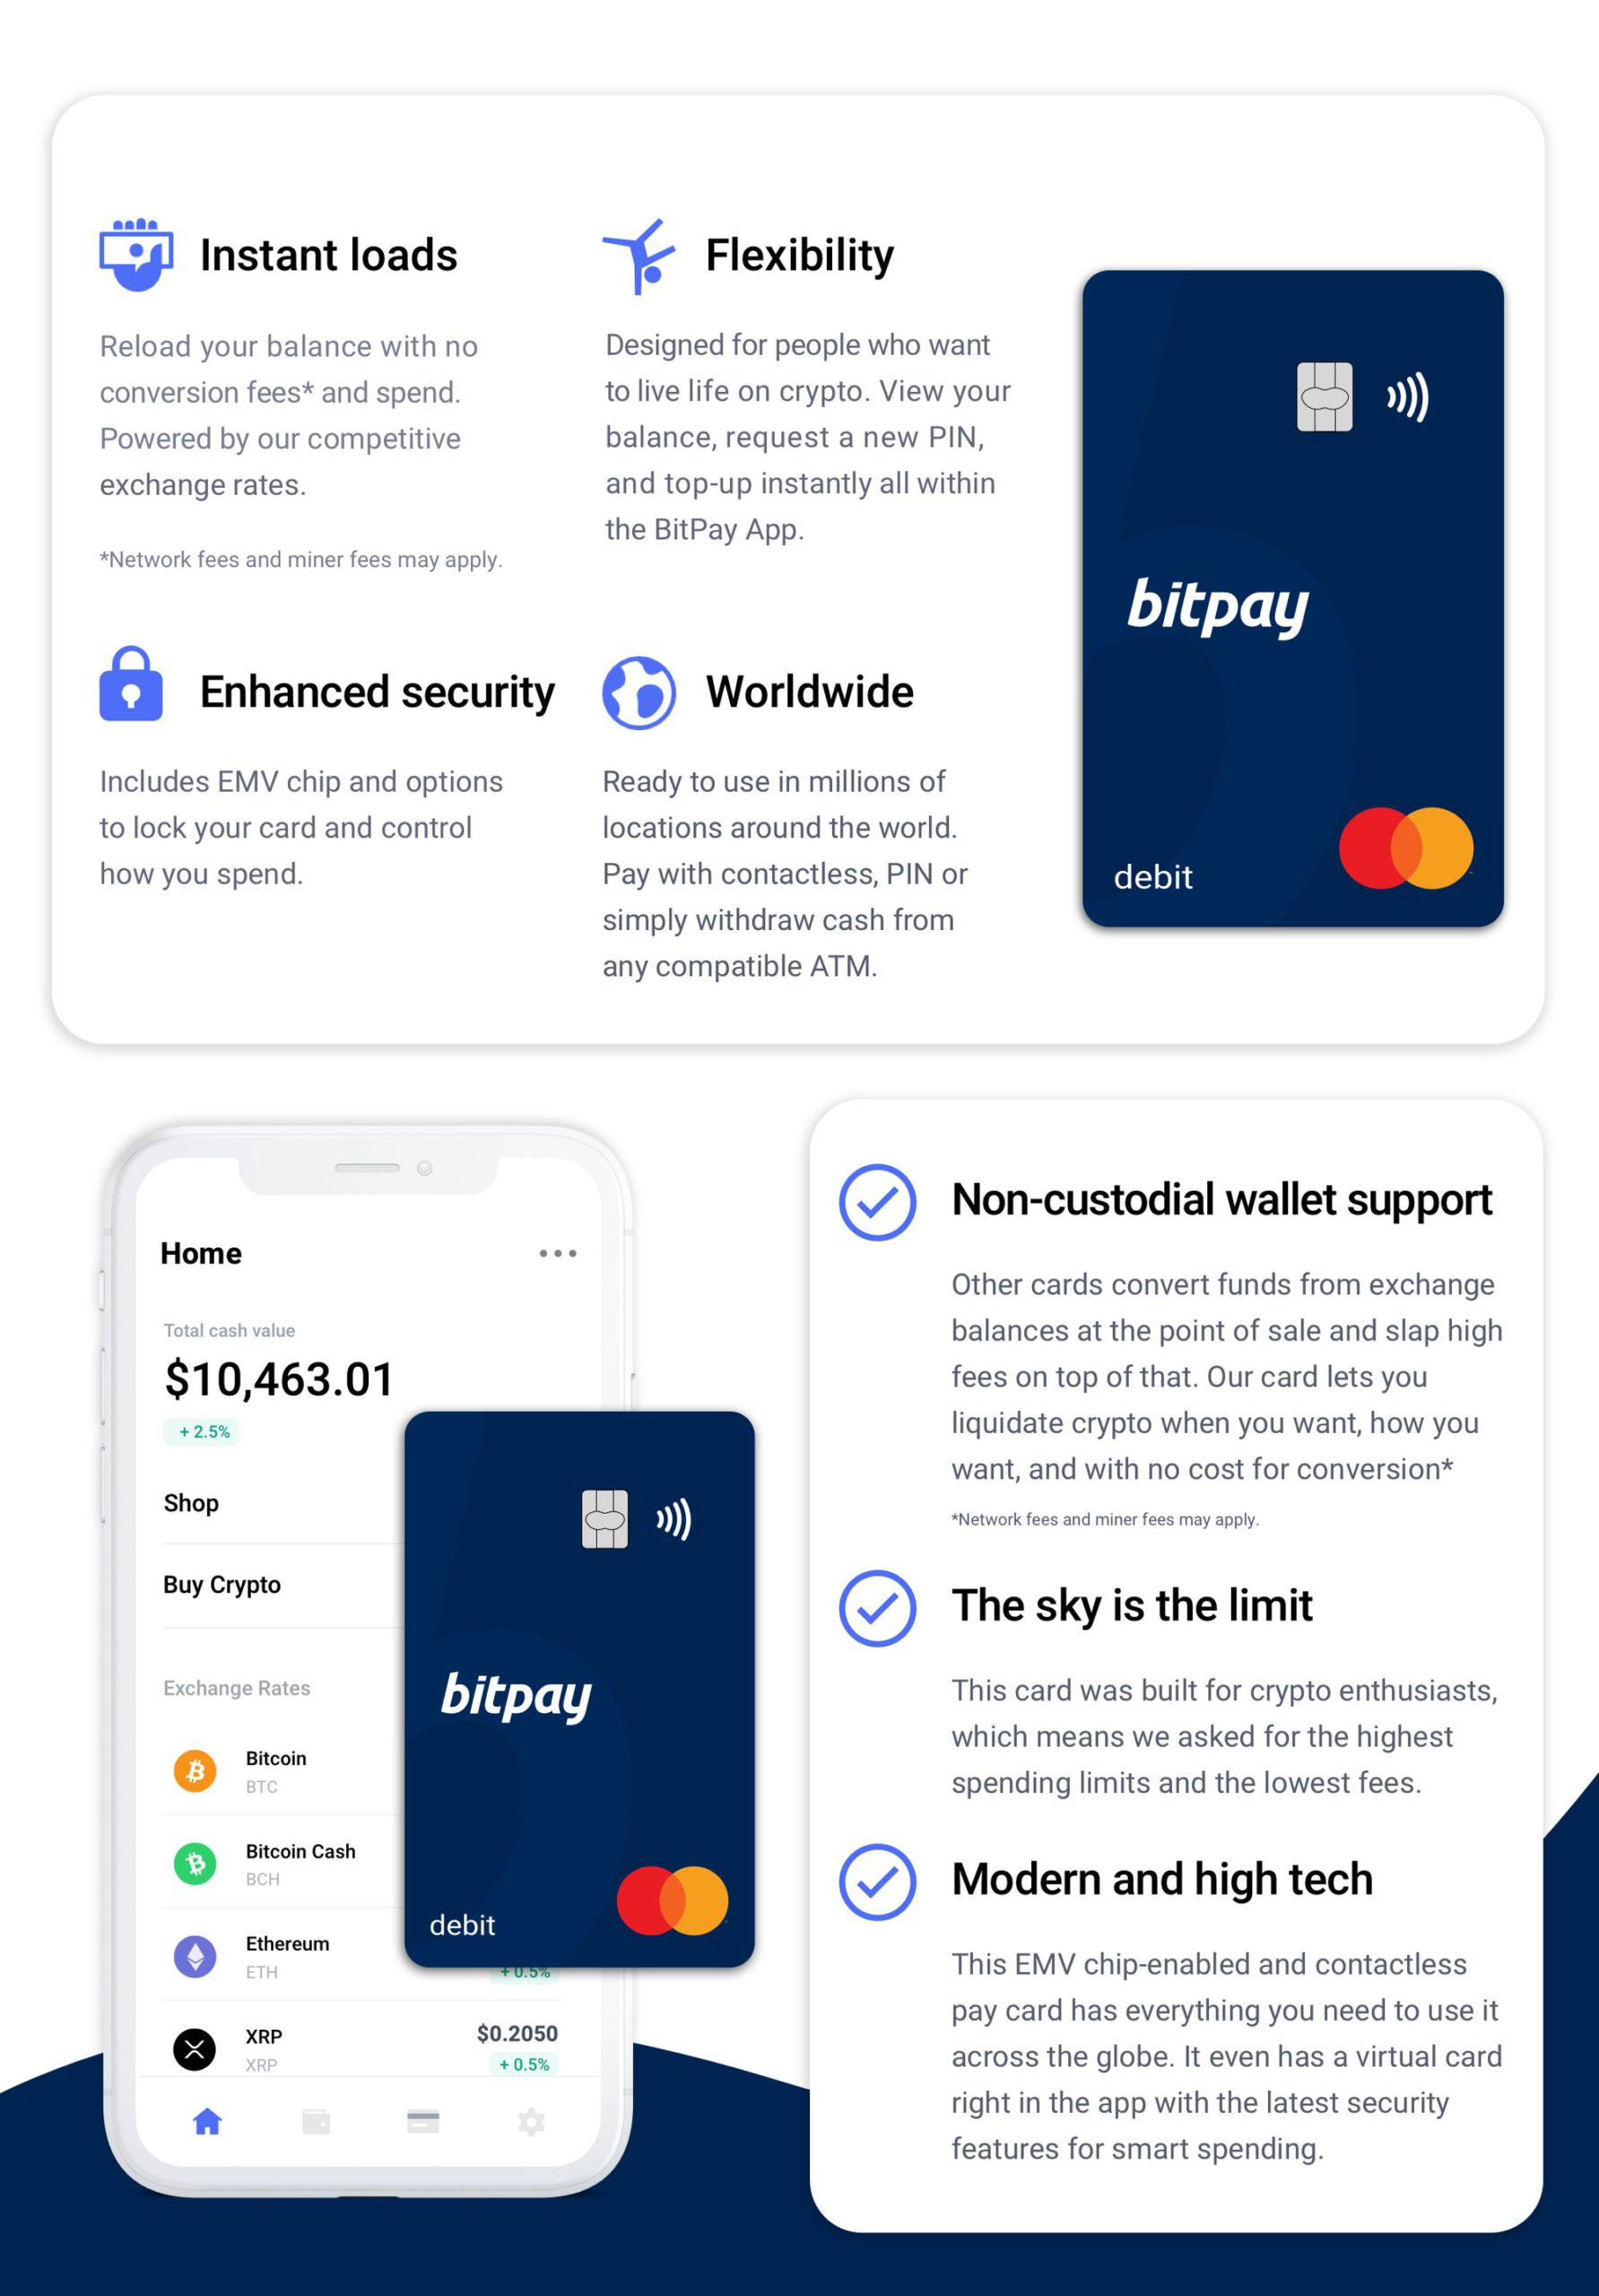 Introducing The New BitPay Card